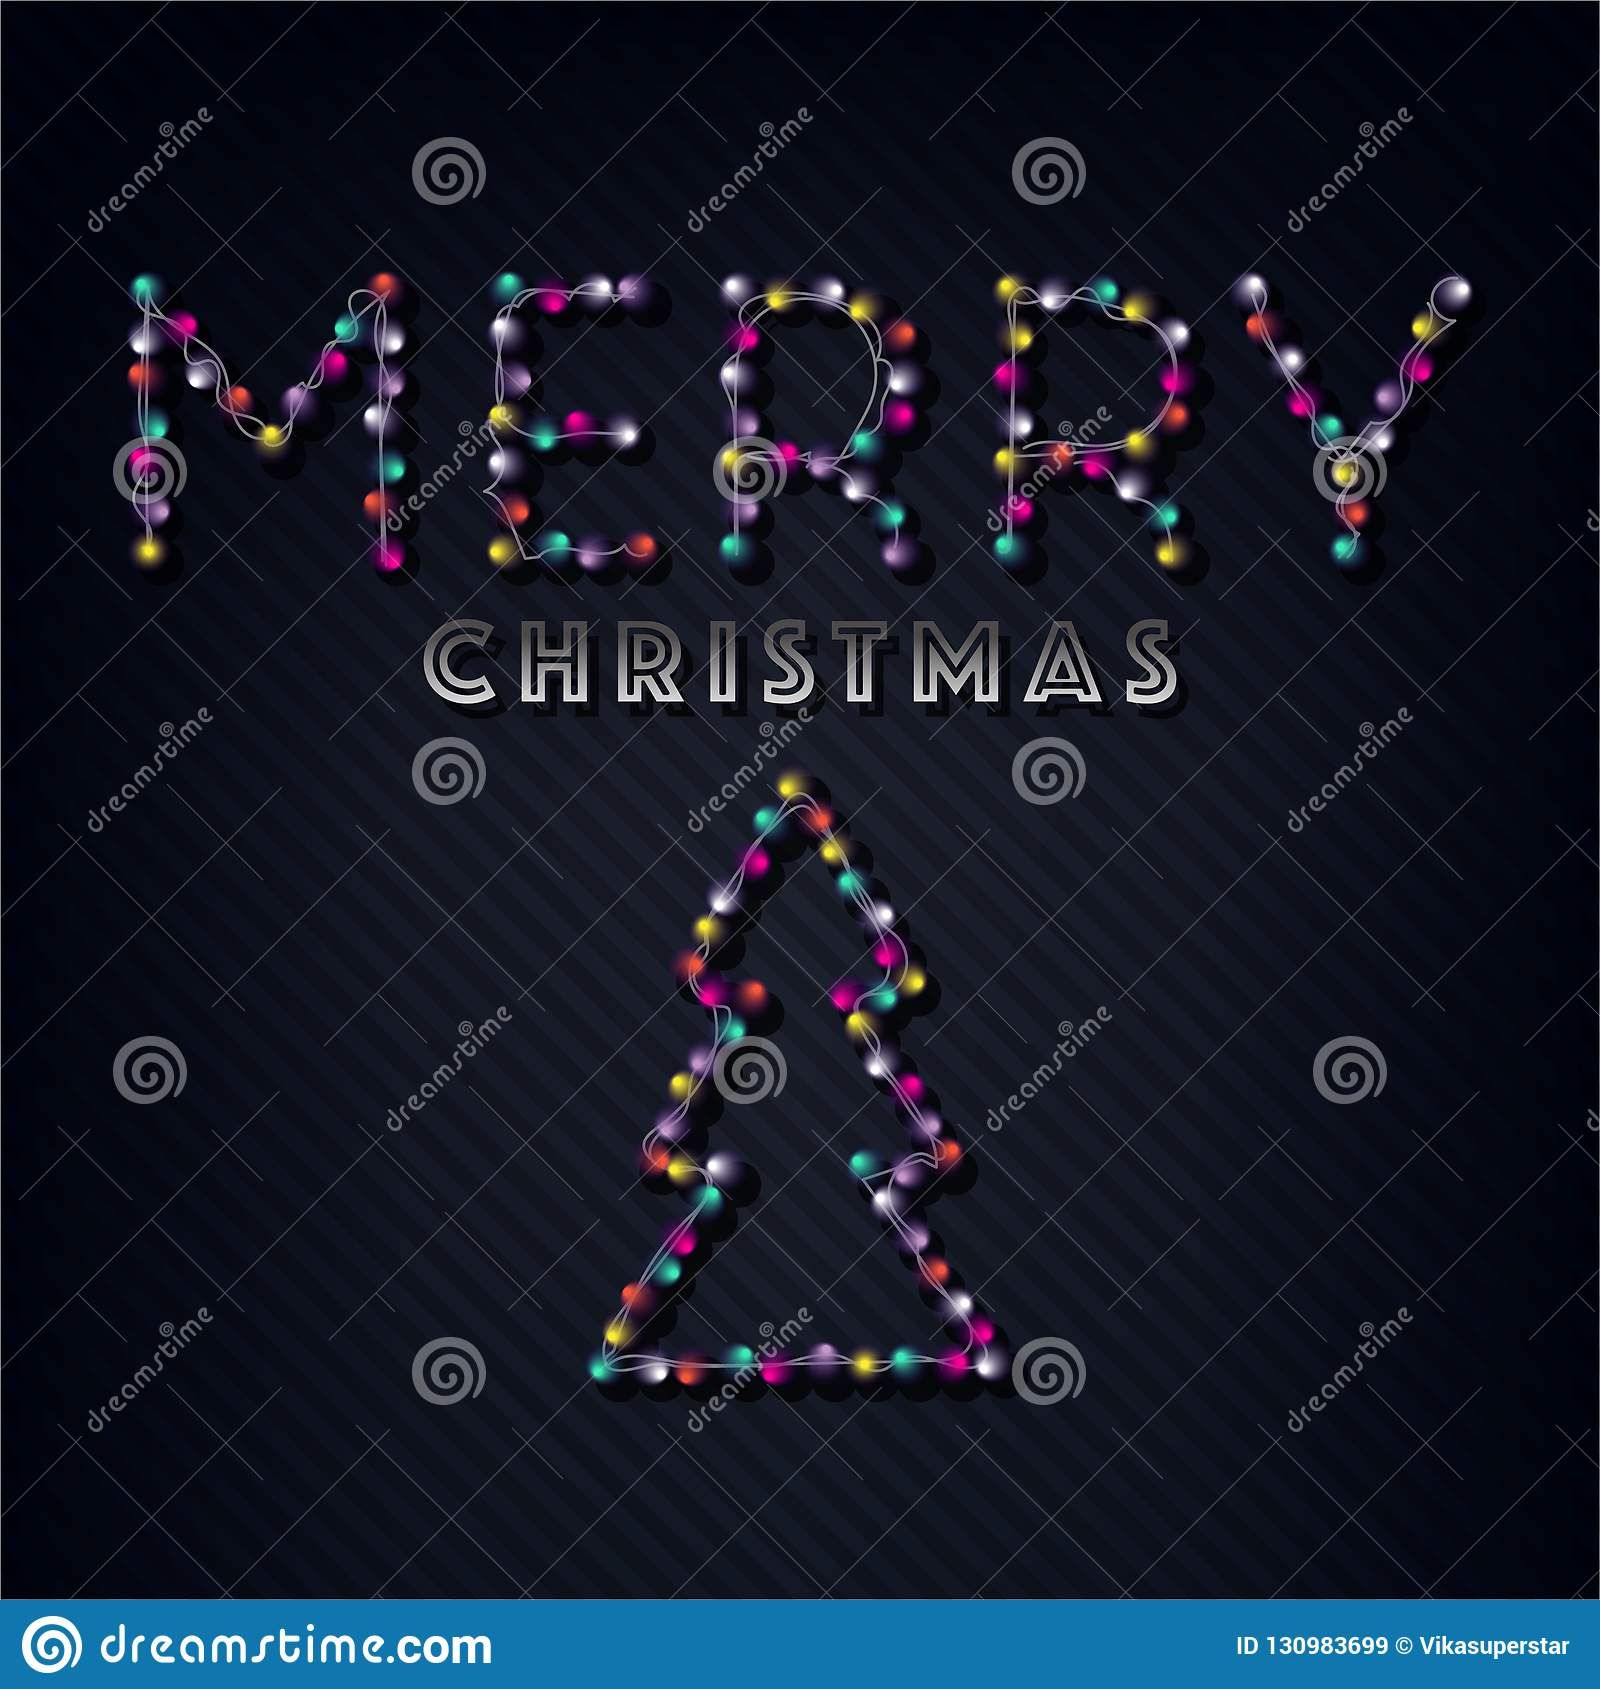 Merry Christmas text, template design letter template, Christmas lights. Bright glowing banner, neon lights, night congratulation.